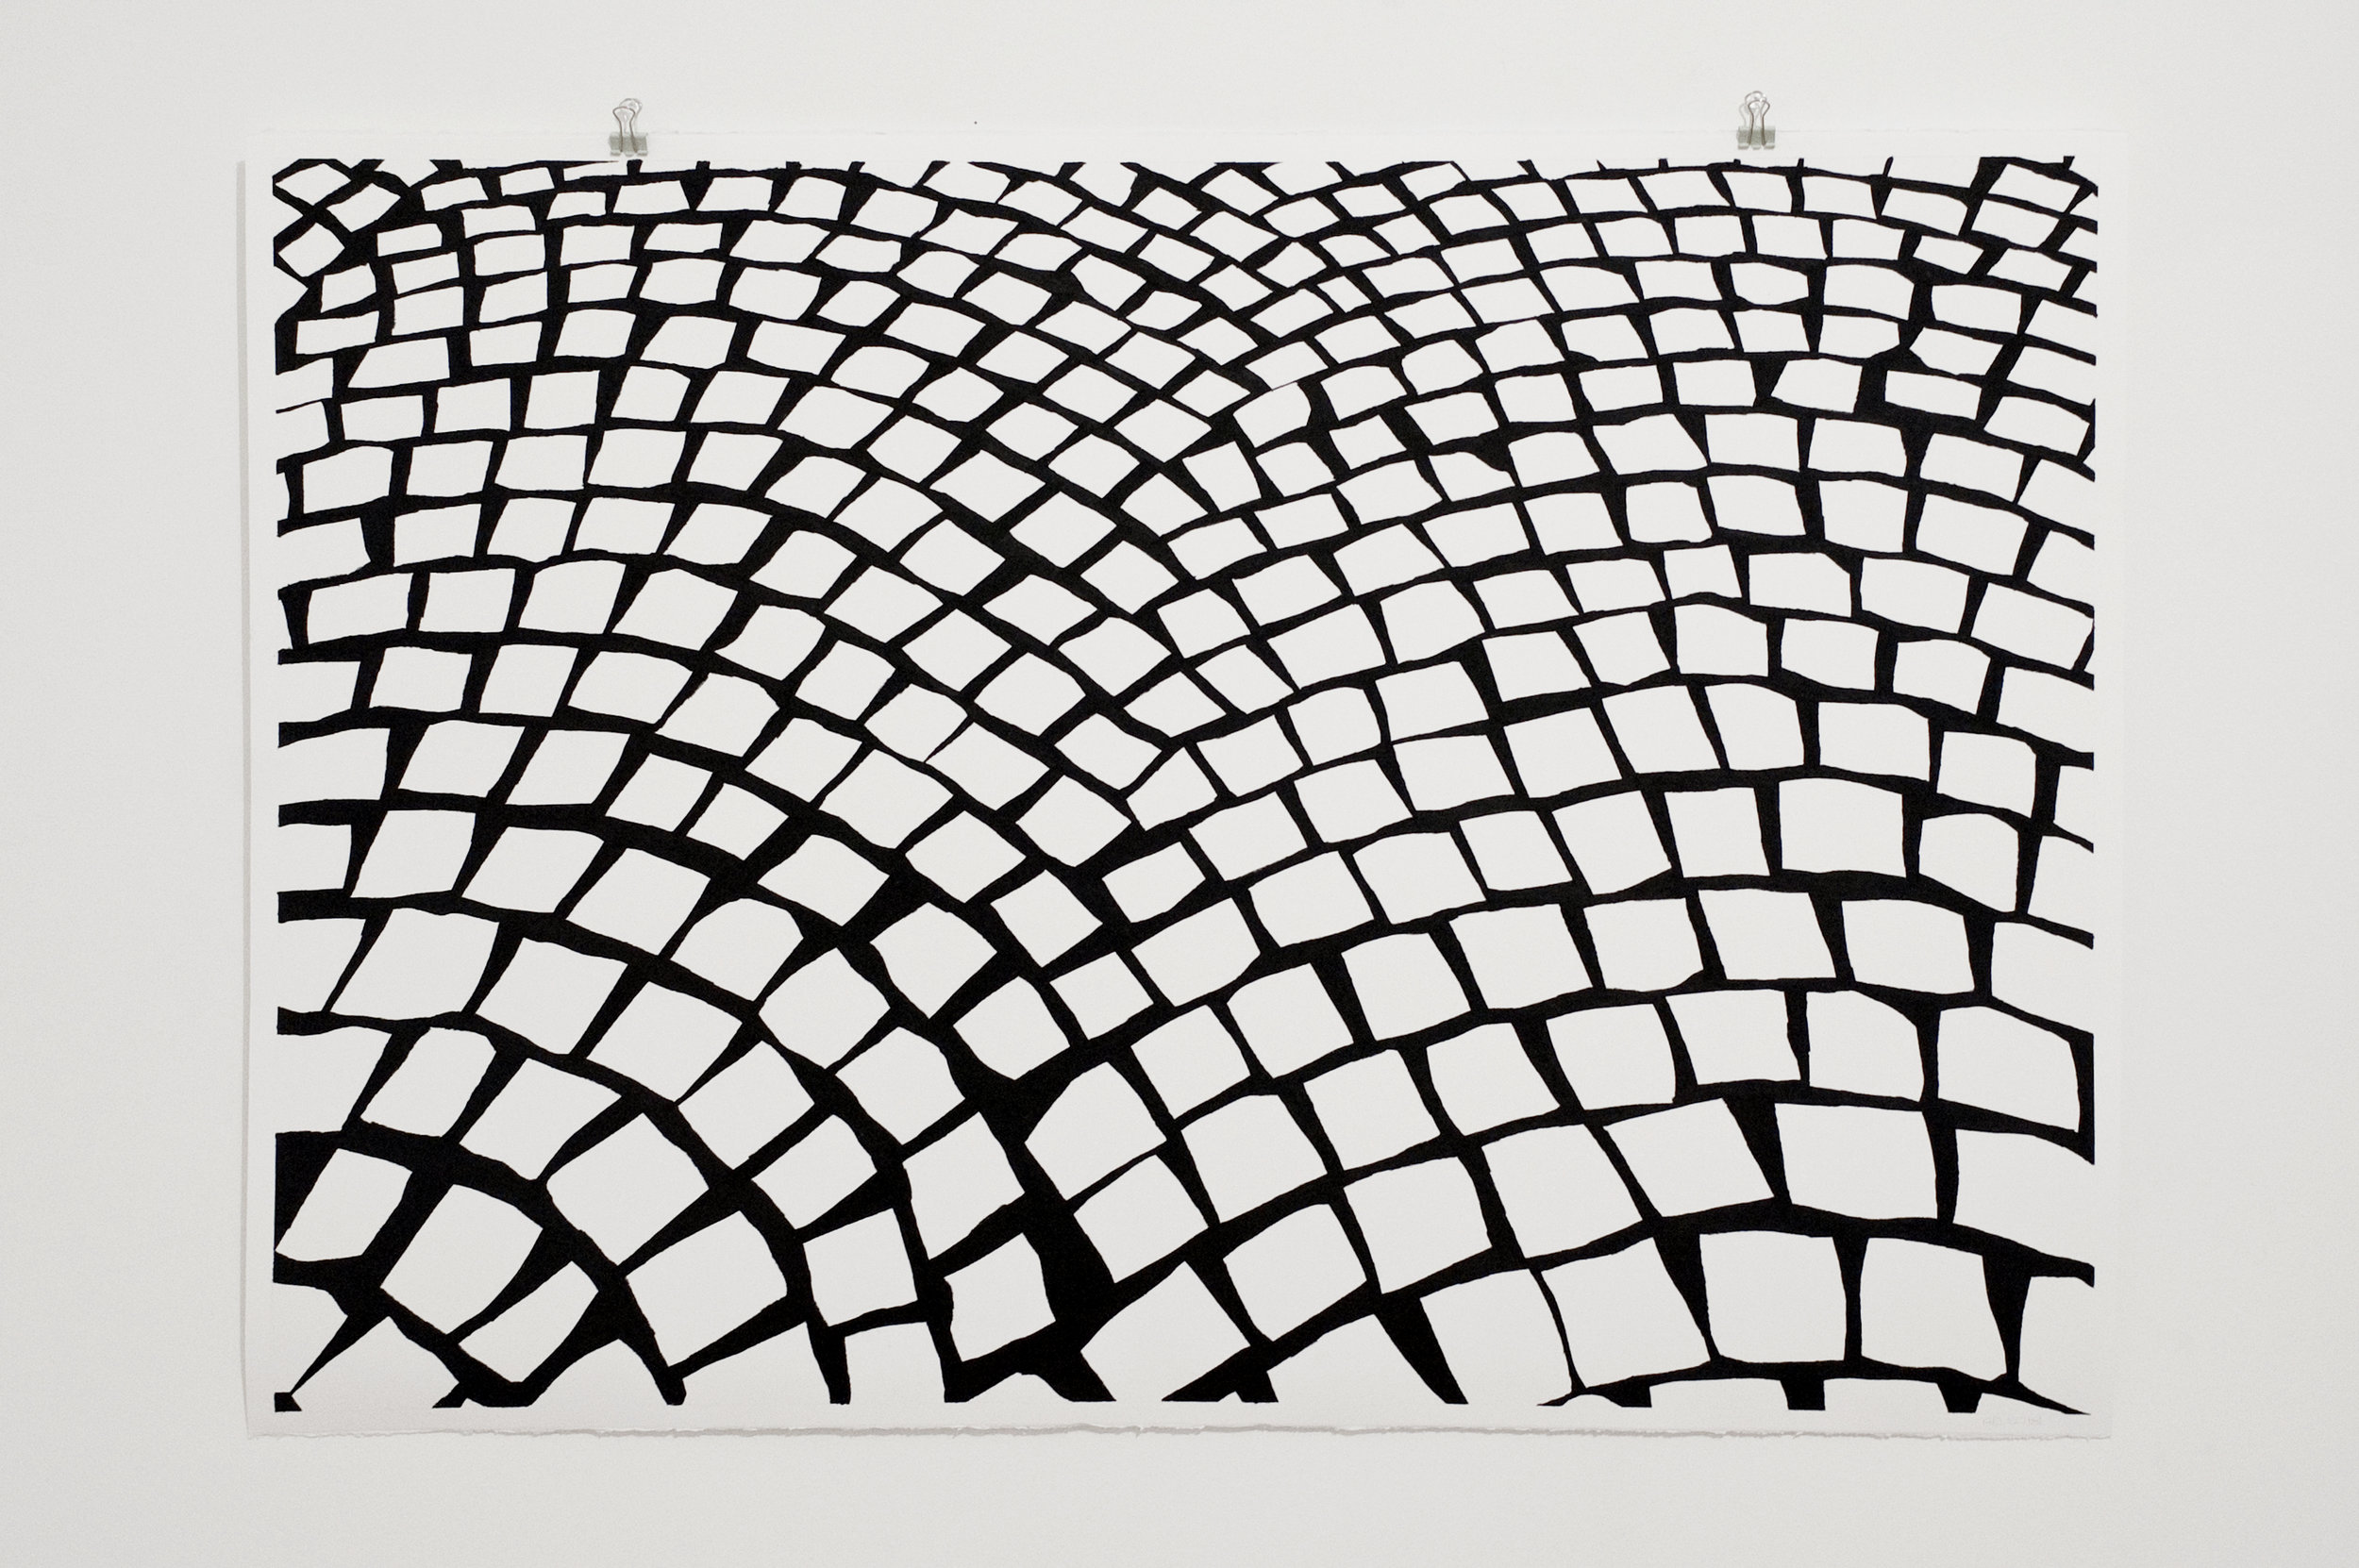 charcoal on paper  70 by 100cm  2018